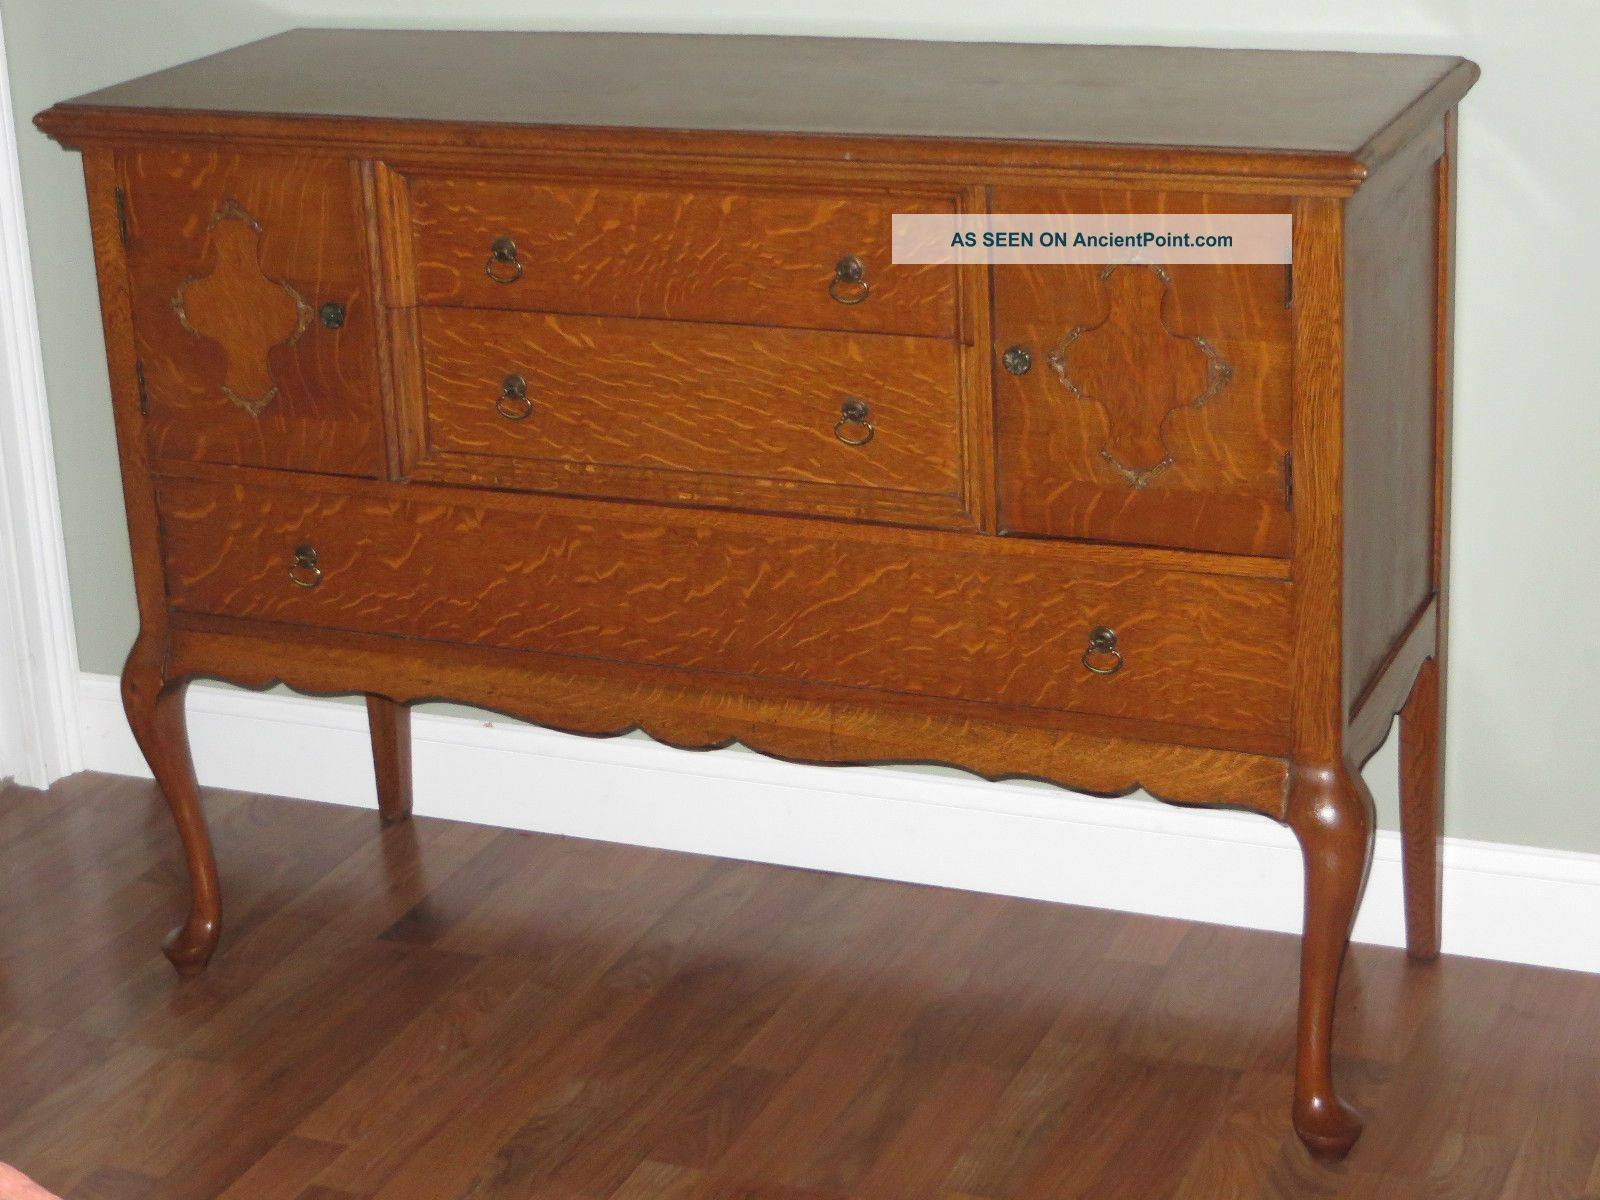 Antique Buffet Value Antique Tiger Oak Sideboard Buffet Server Pertaining To 2017 Antique Buffet Sideboards (#5 of 15)